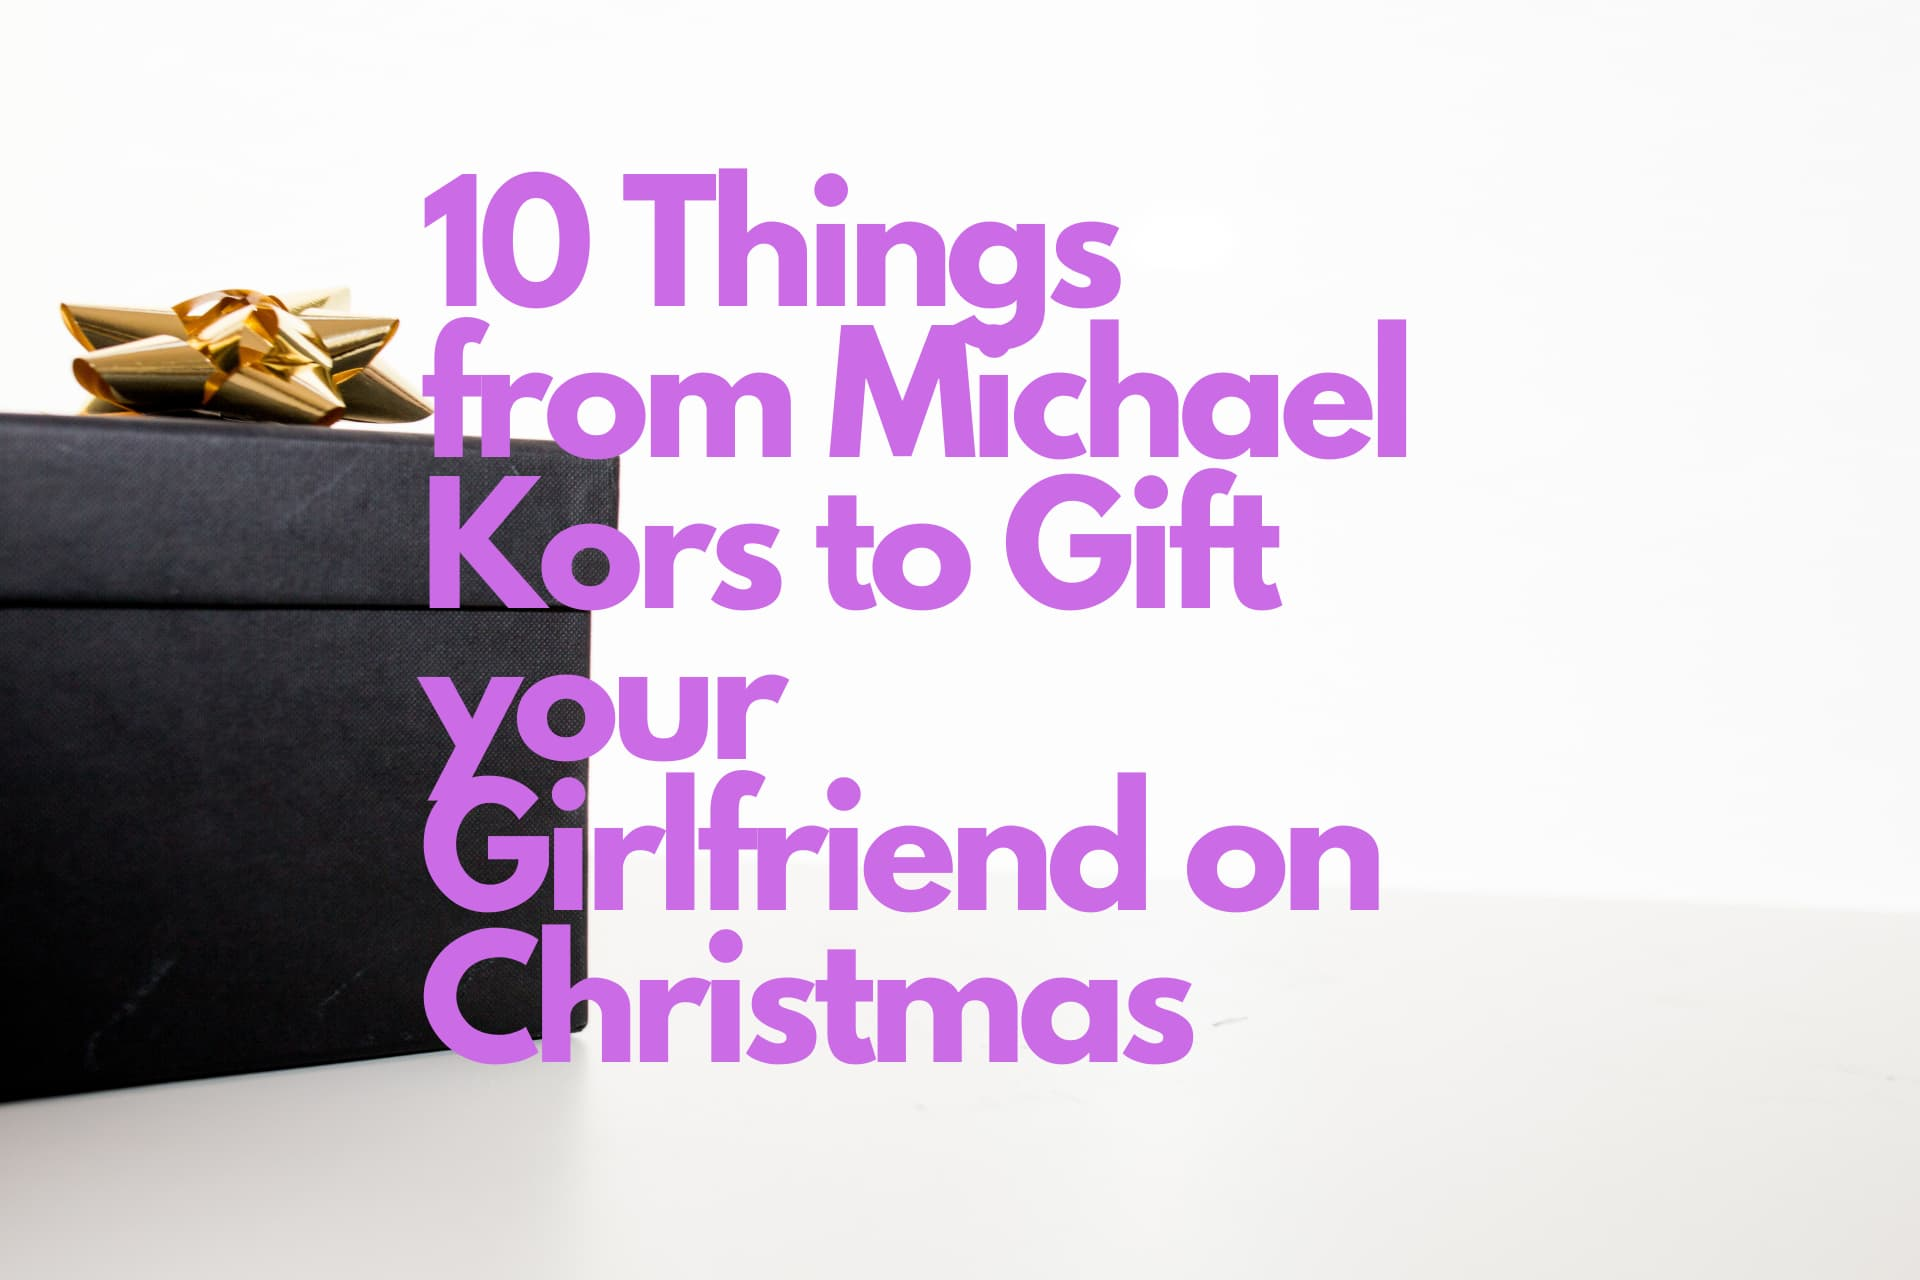 10 Things from Michael kors to Gift your Girlfriend on Christmas